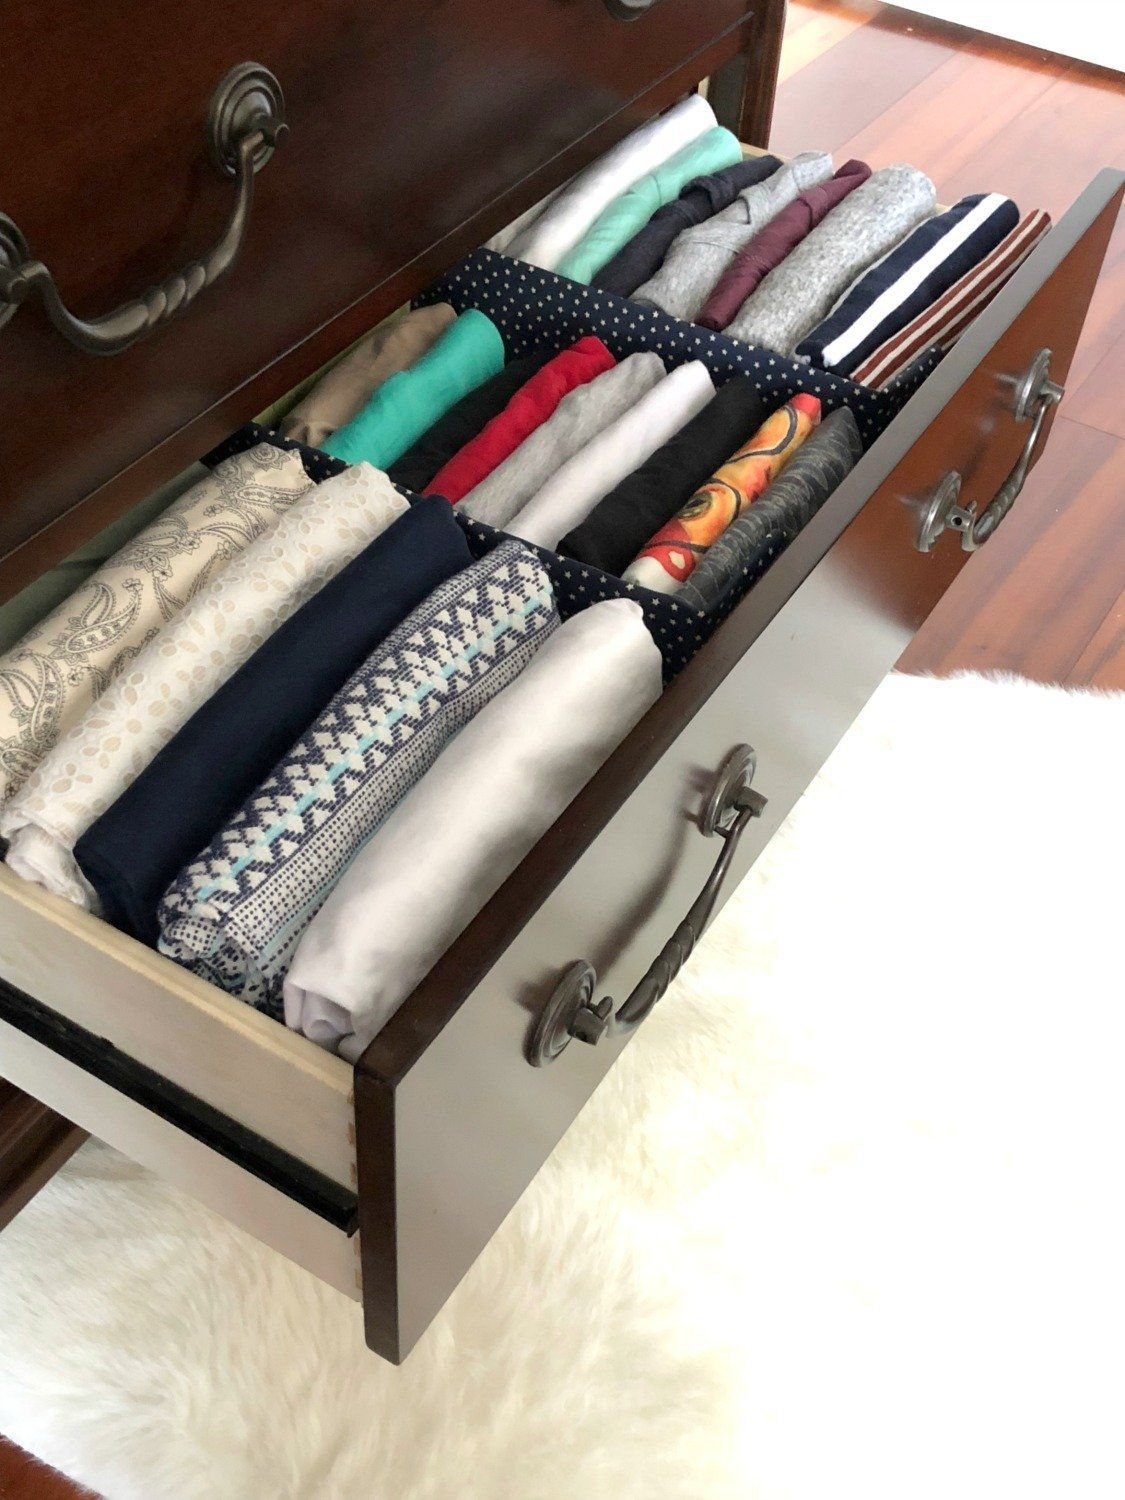 File Fold Drawers And Use Diy Dividers Diy Drawer Dividers Diy Drawers Drawer Dividers